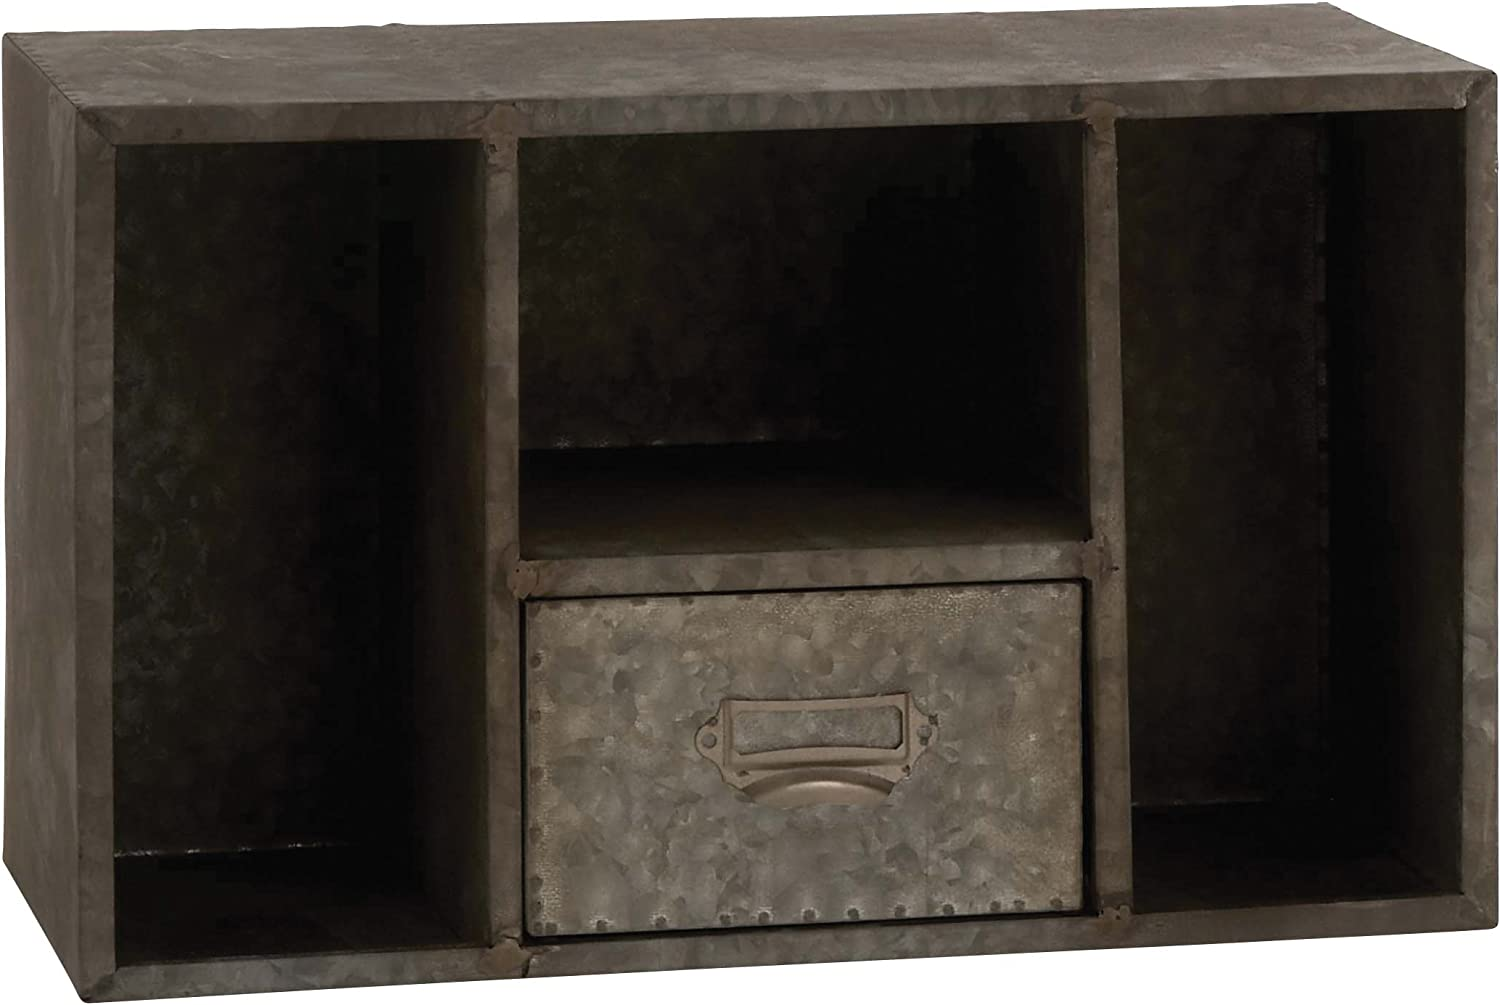 Benzara 97185 Attractive and Rusty Styled Square Wall Shelf